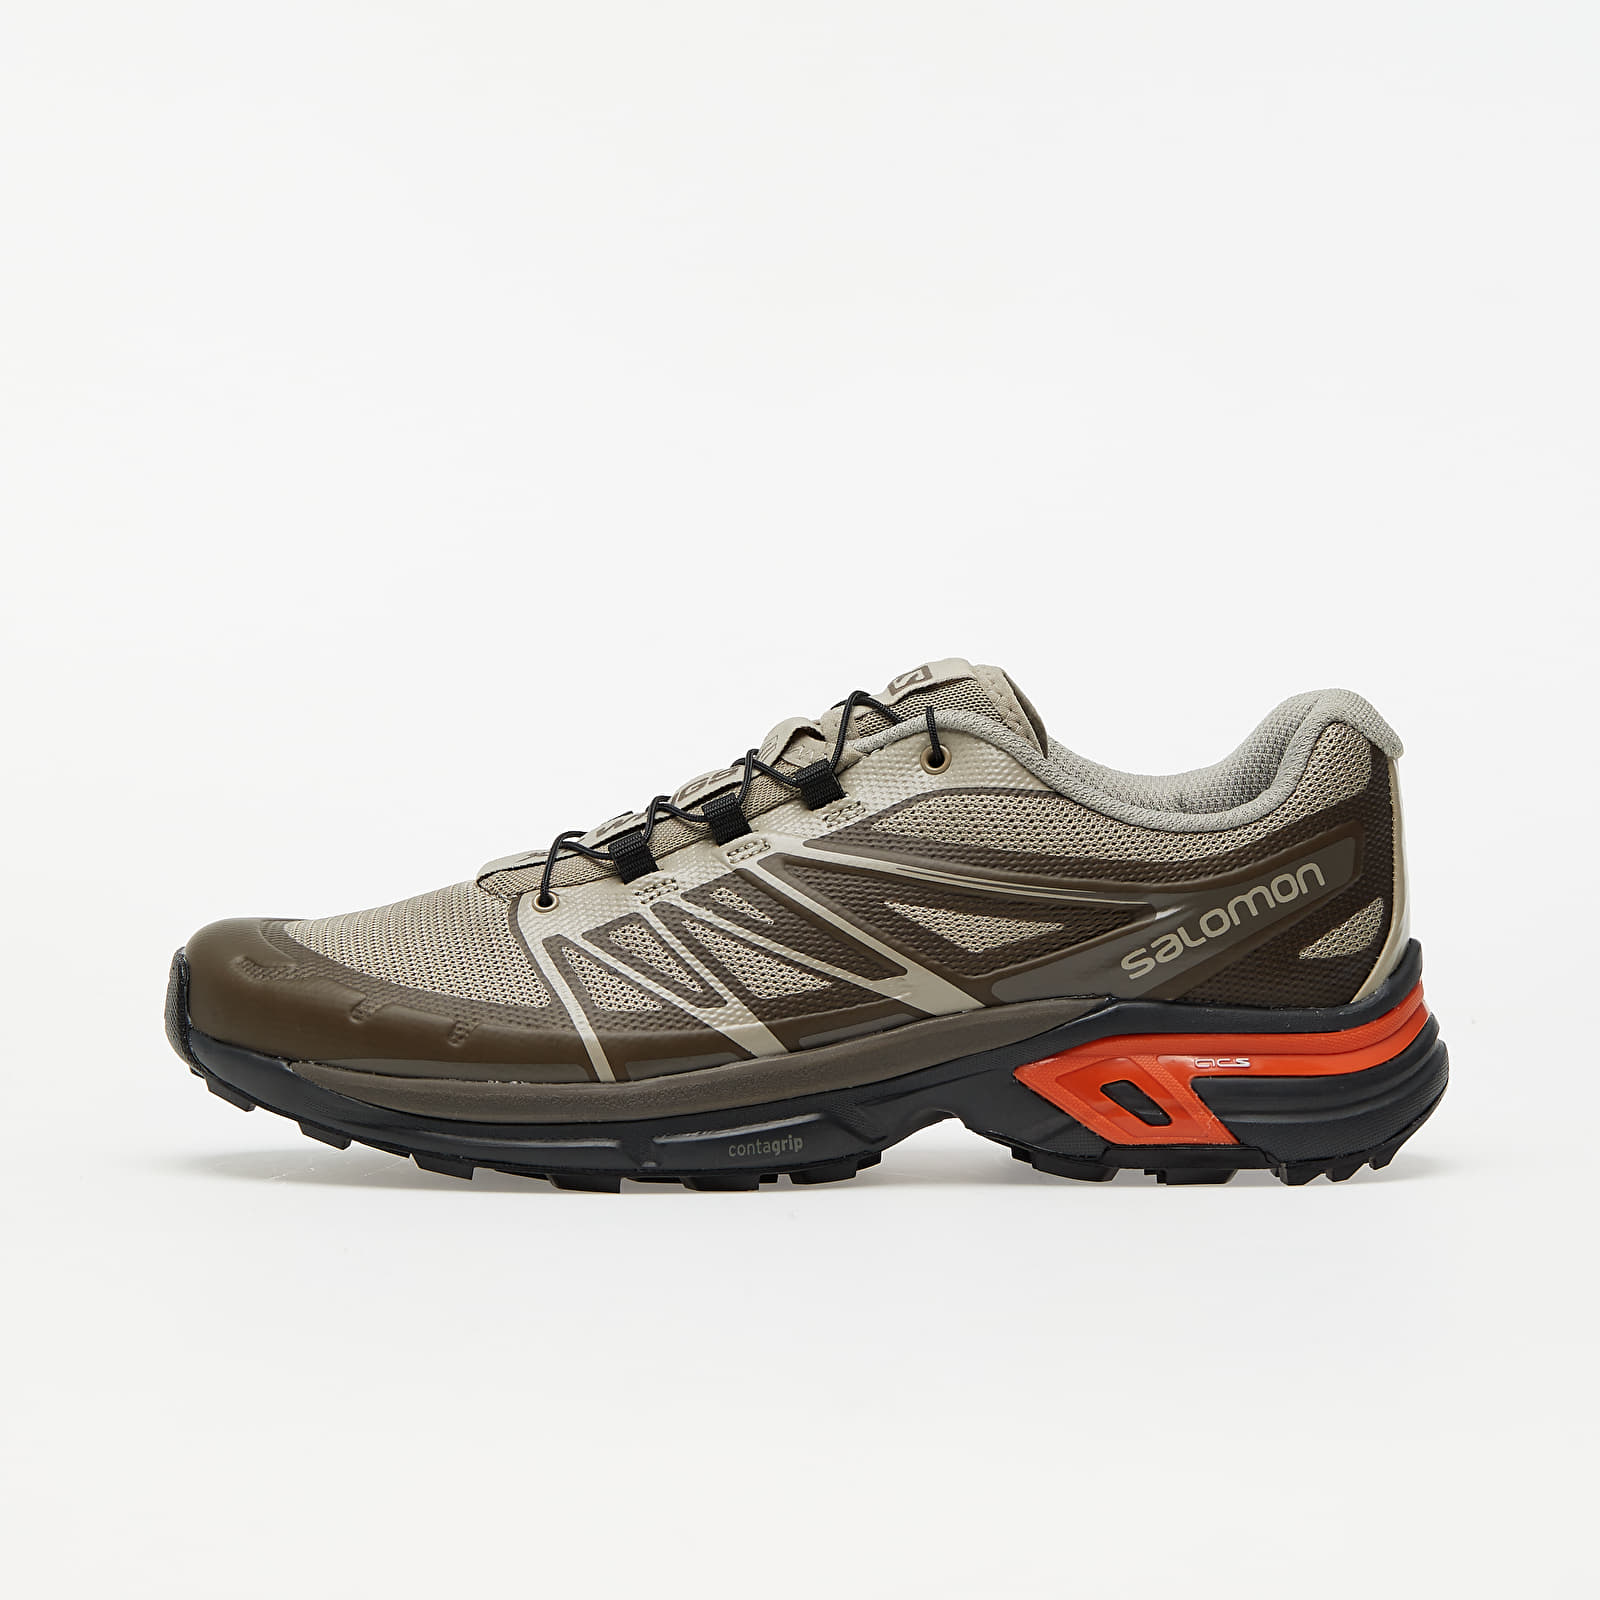 Мужская обувь Salomon XT-Wings 2 Advanced Vintage Kaki/ Ebony/ Autumn Blaze